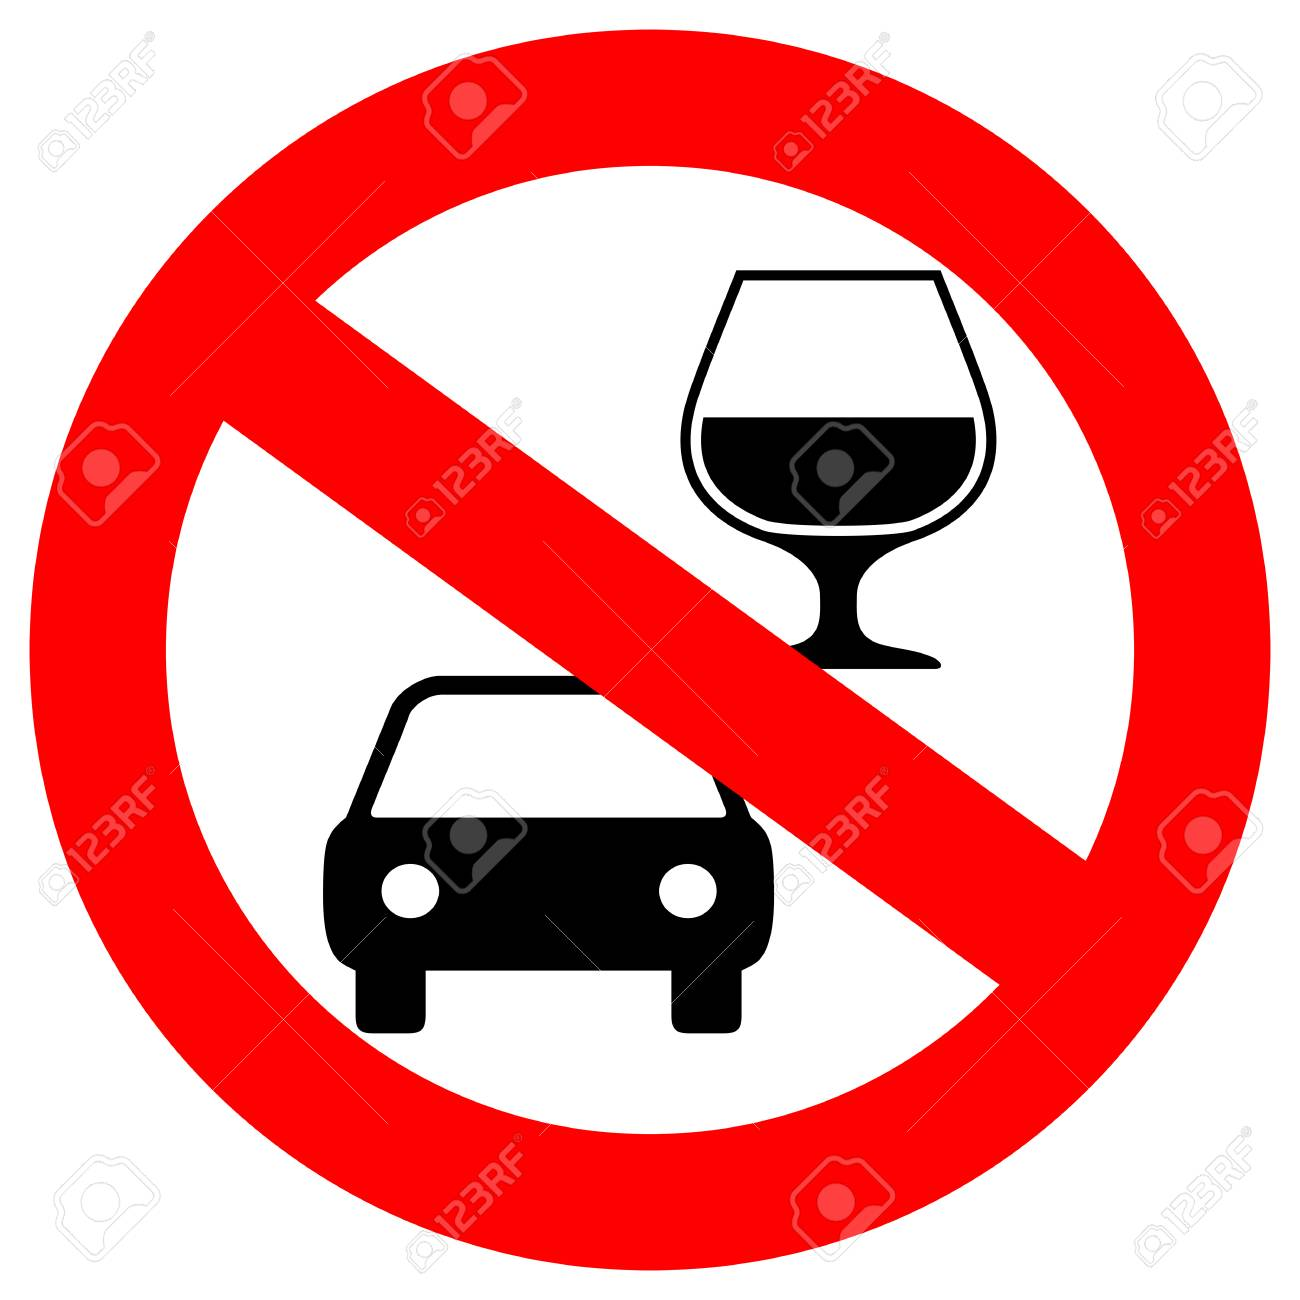 No drink and drive vector sign - 95306053